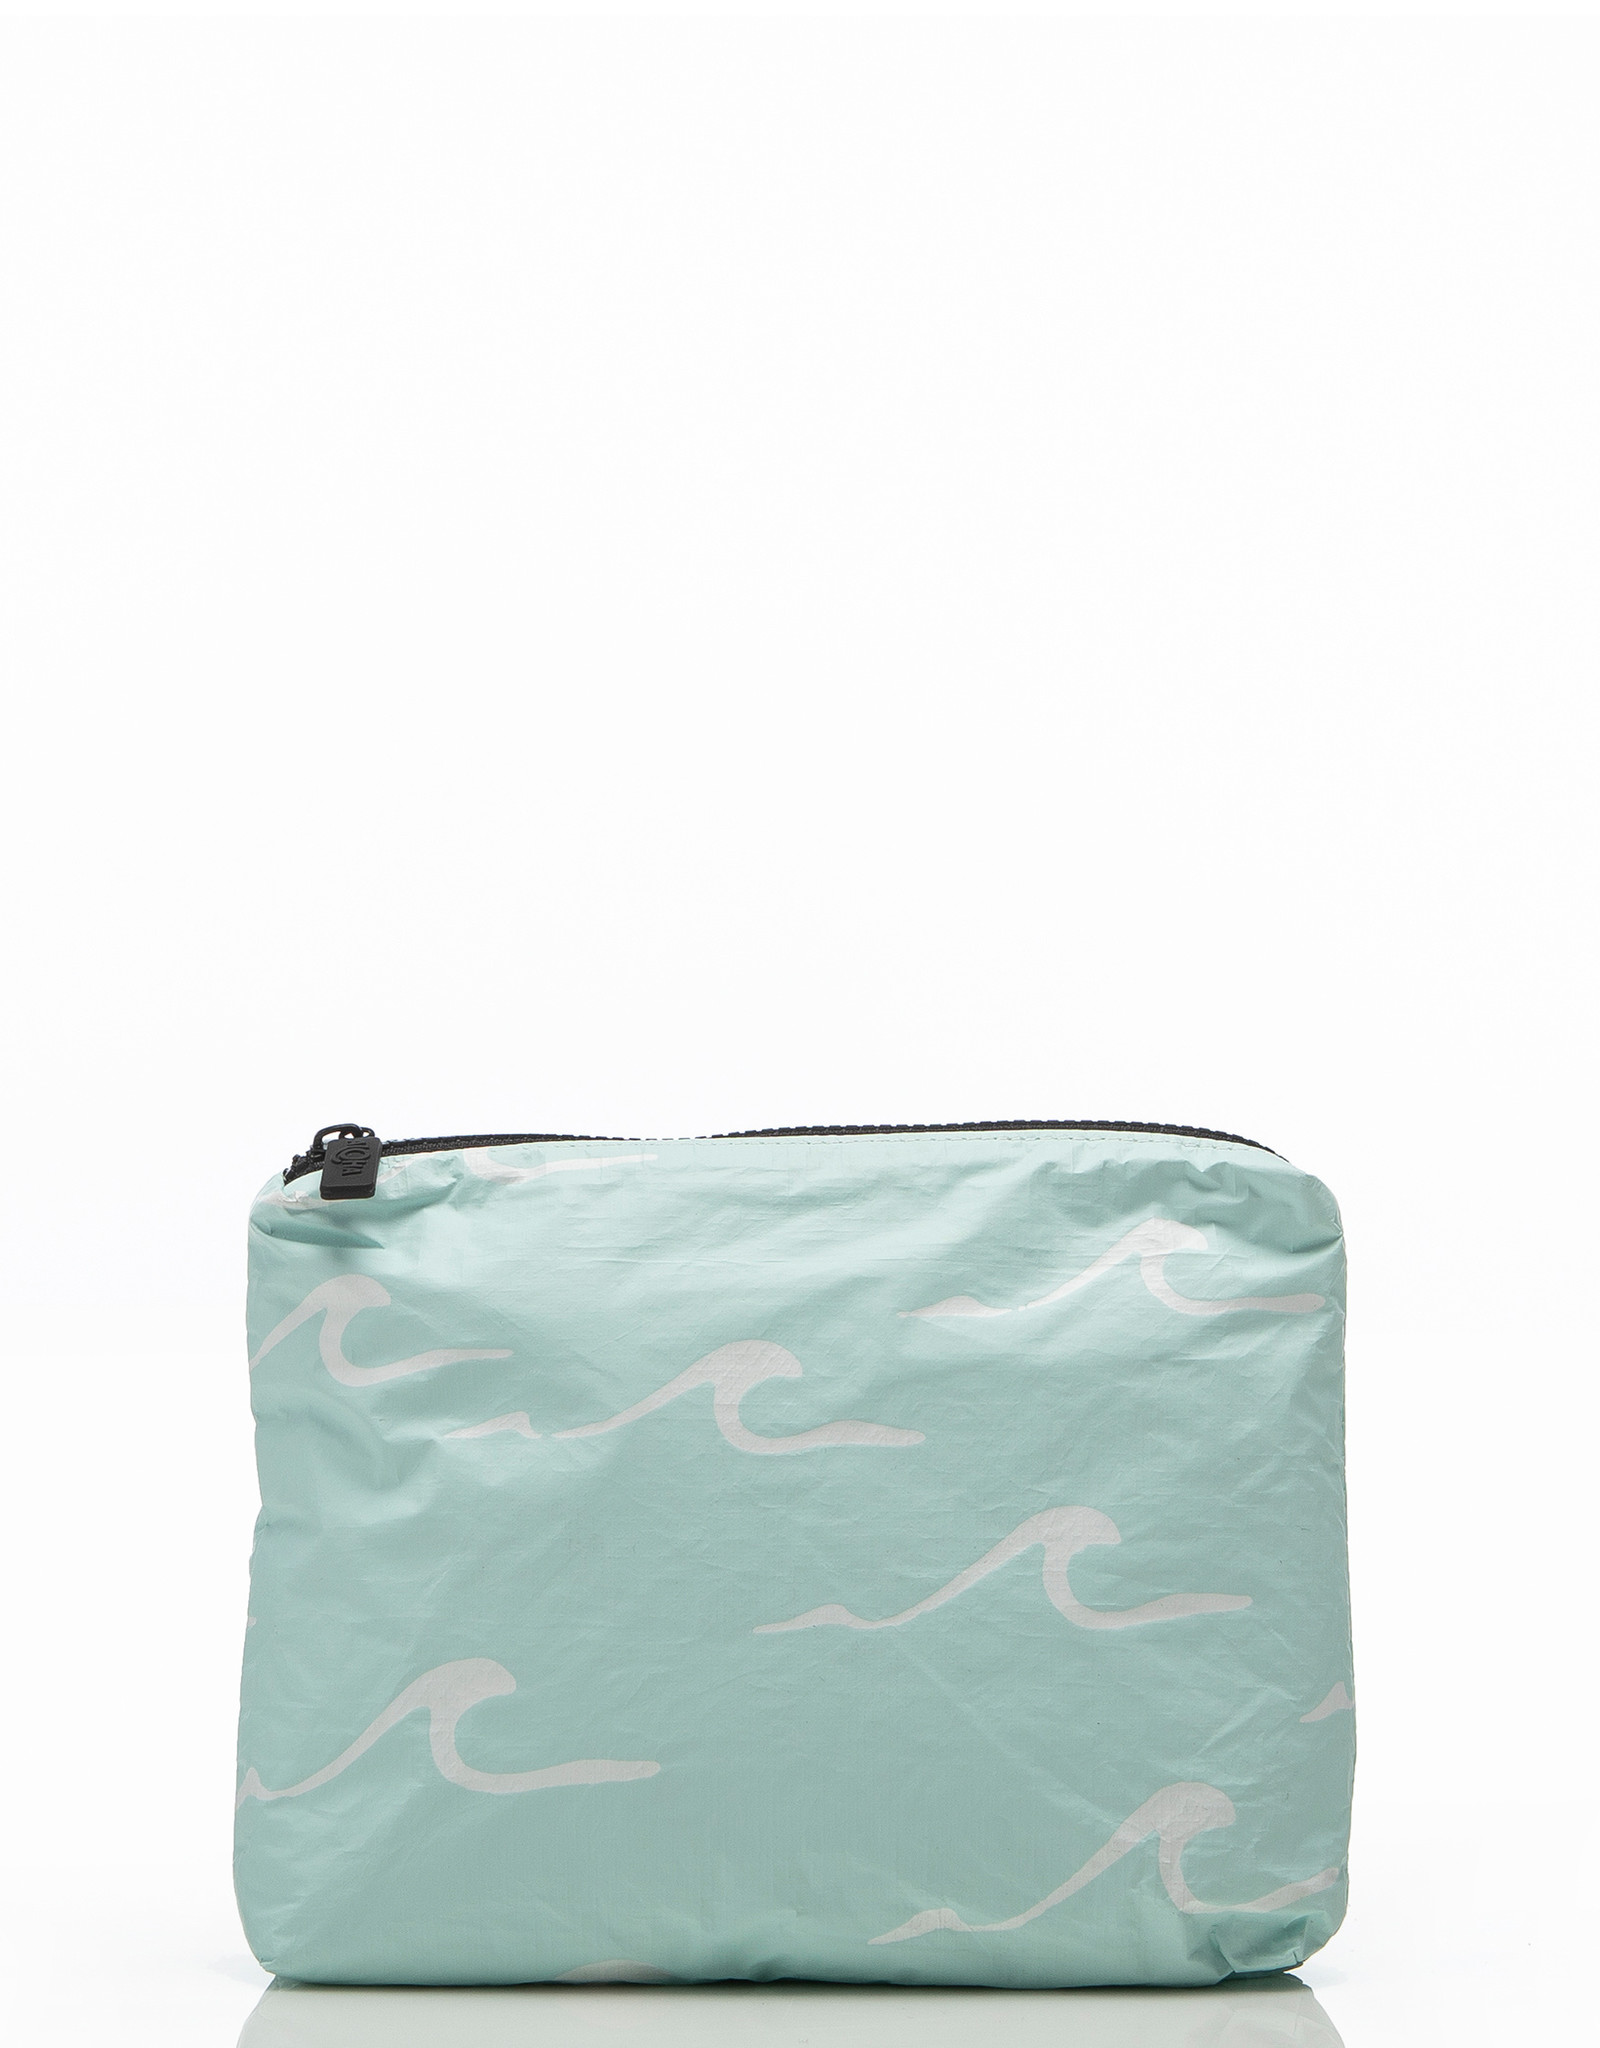 SMALL WATER RESISTANT POUCH